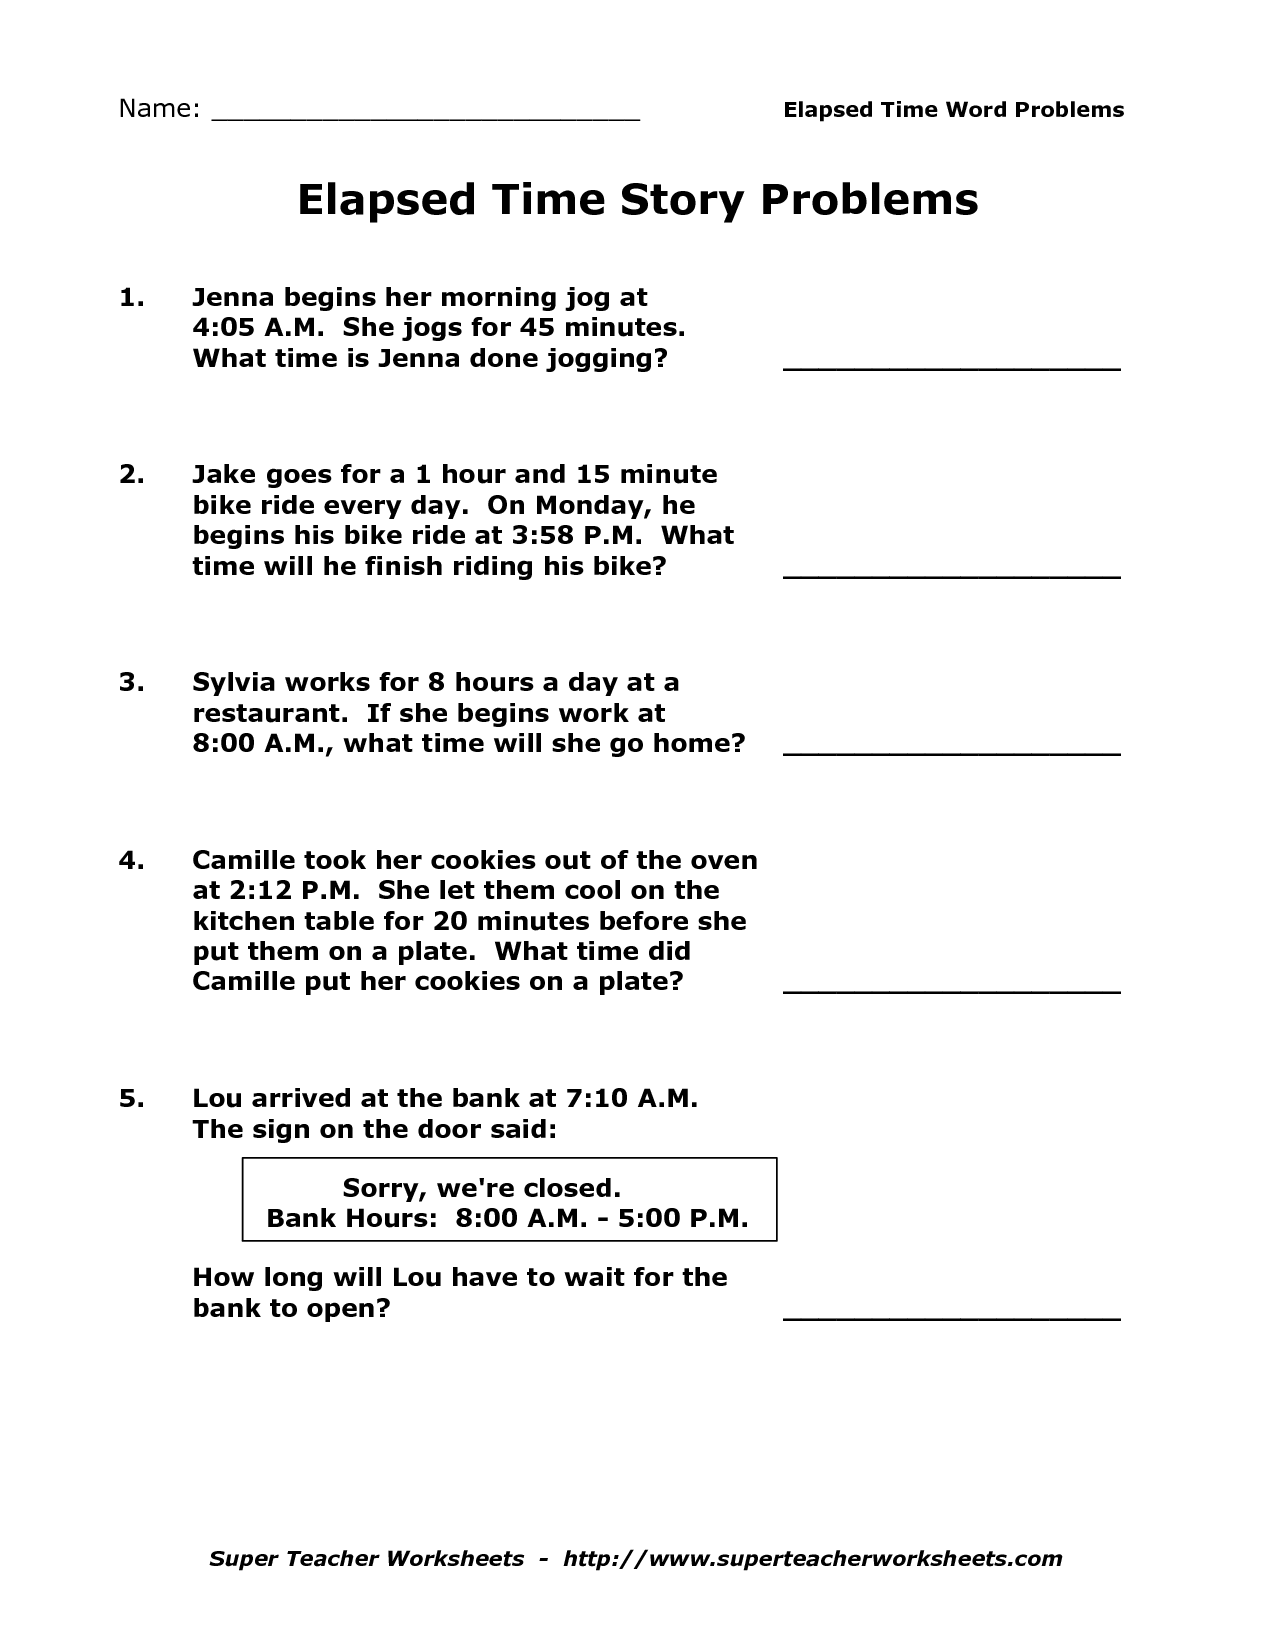 15 Best Images Of Easy Elapsed Time Worksheets